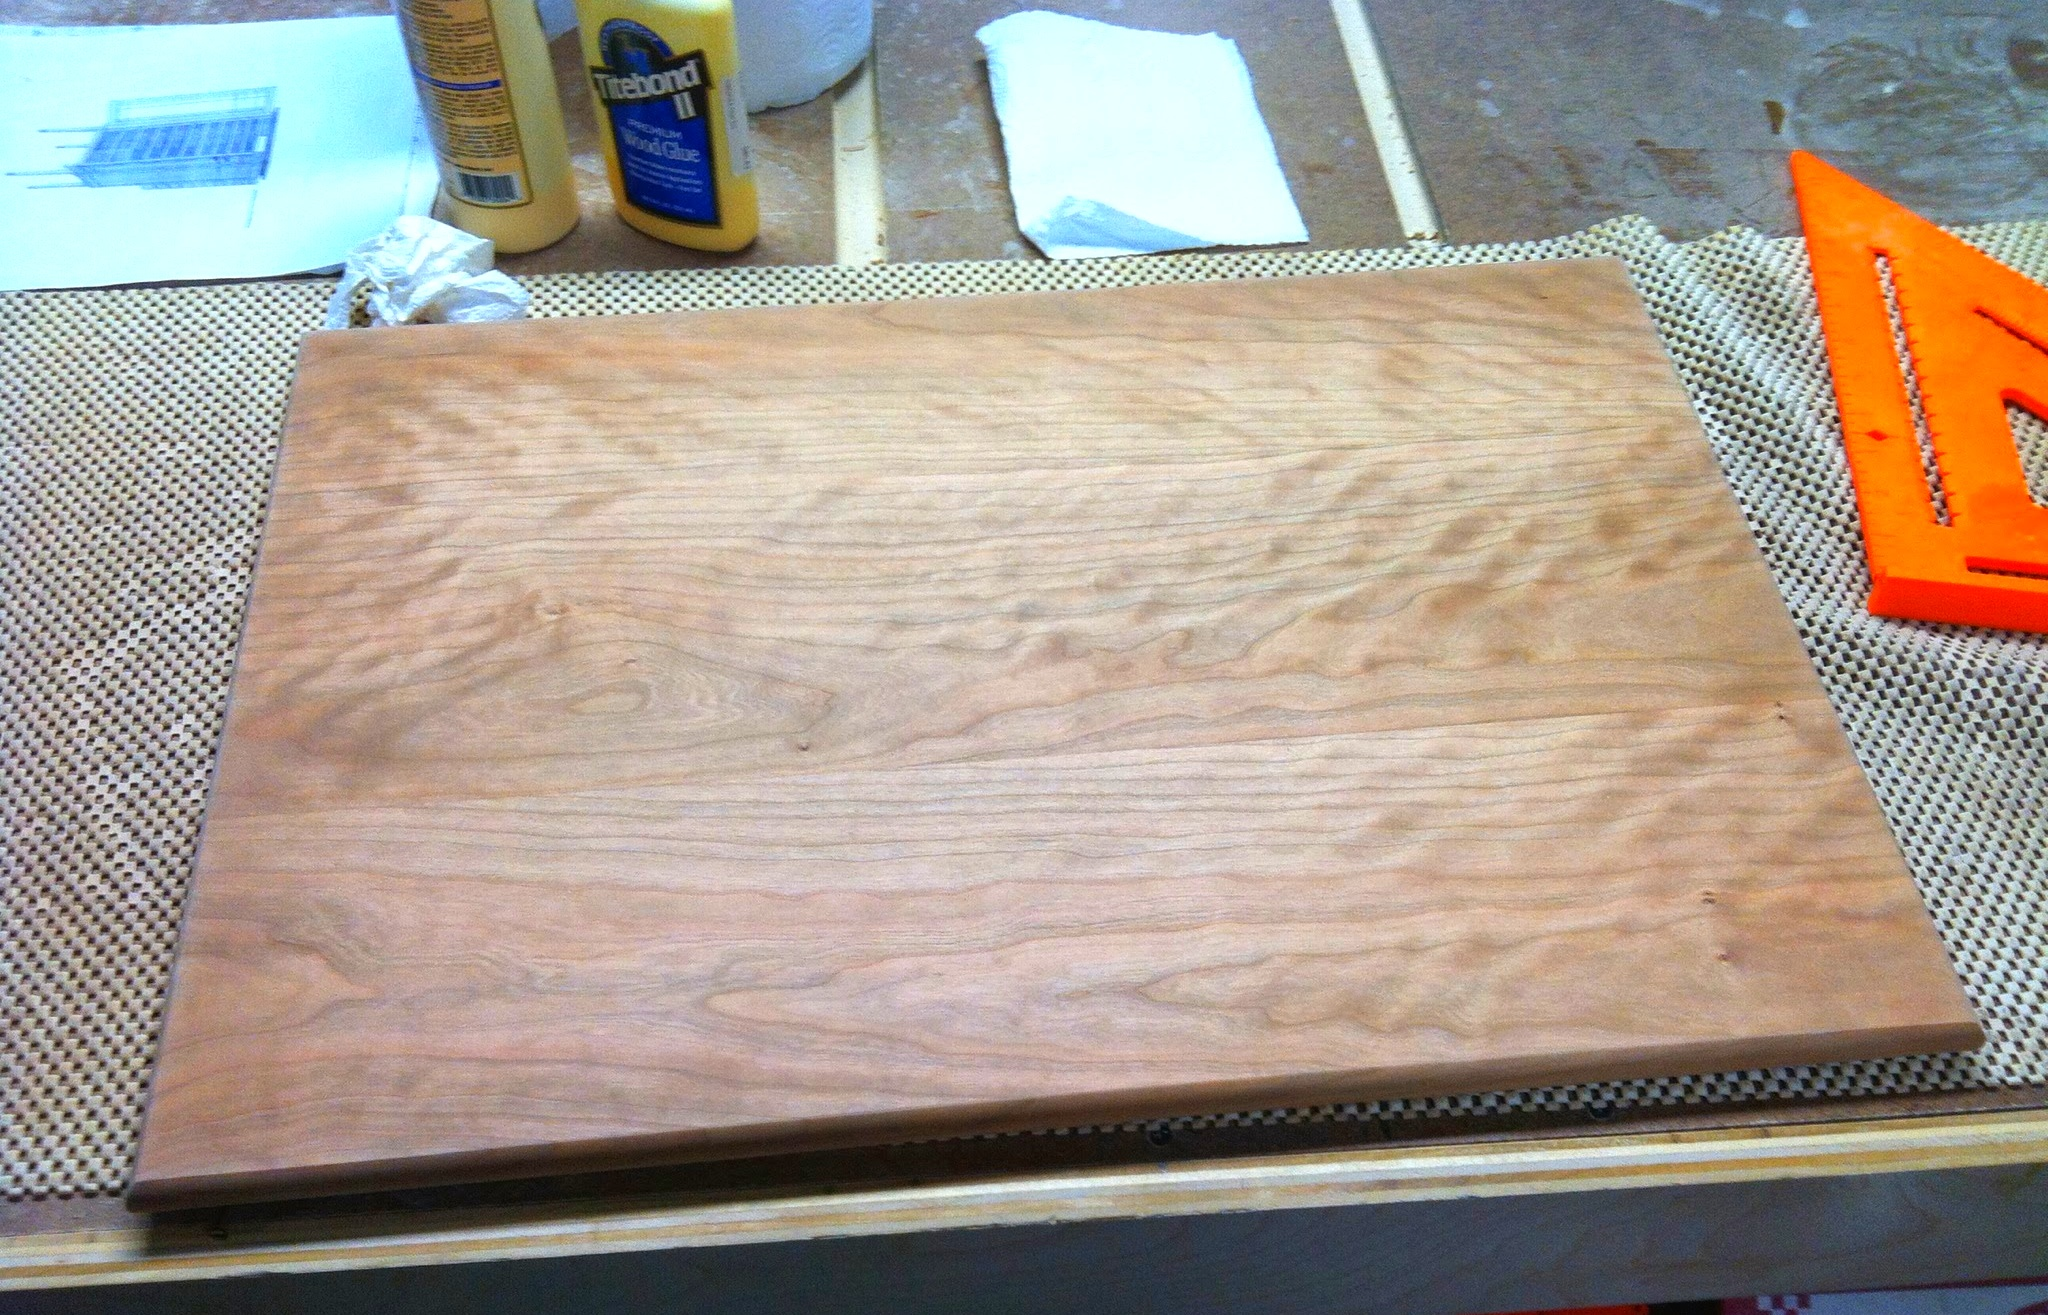 The curly cherry top of the cabinet is probably the best looking wood I've ever worked